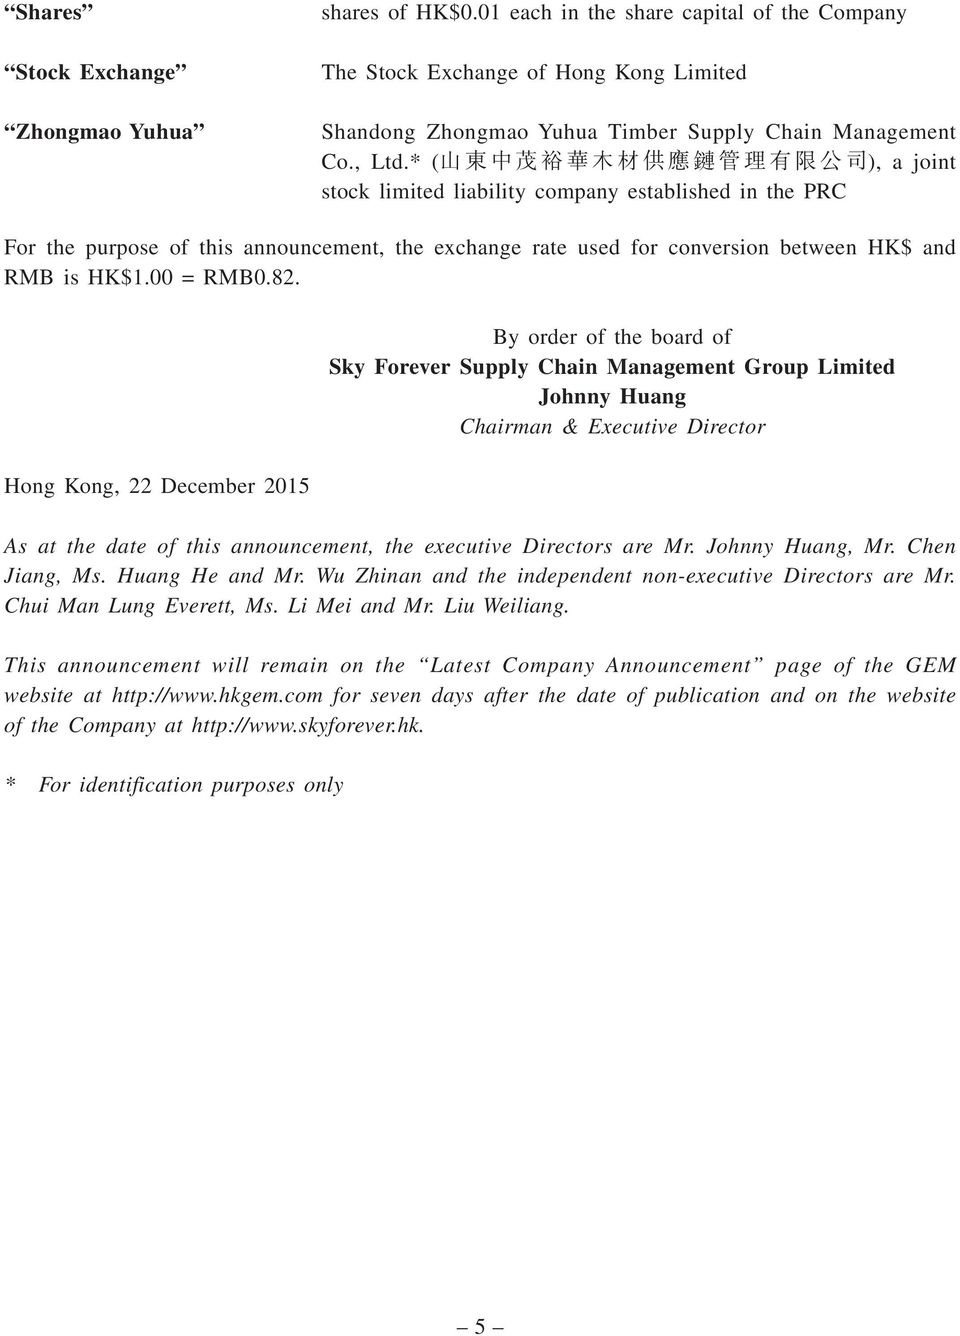 Hong Kong, 22 December 2015 By order of the board of Sky Forever Supply Chain Management Group Limited Johnny Huang Chairman & Executive Director As at the date of this announcement, the executive